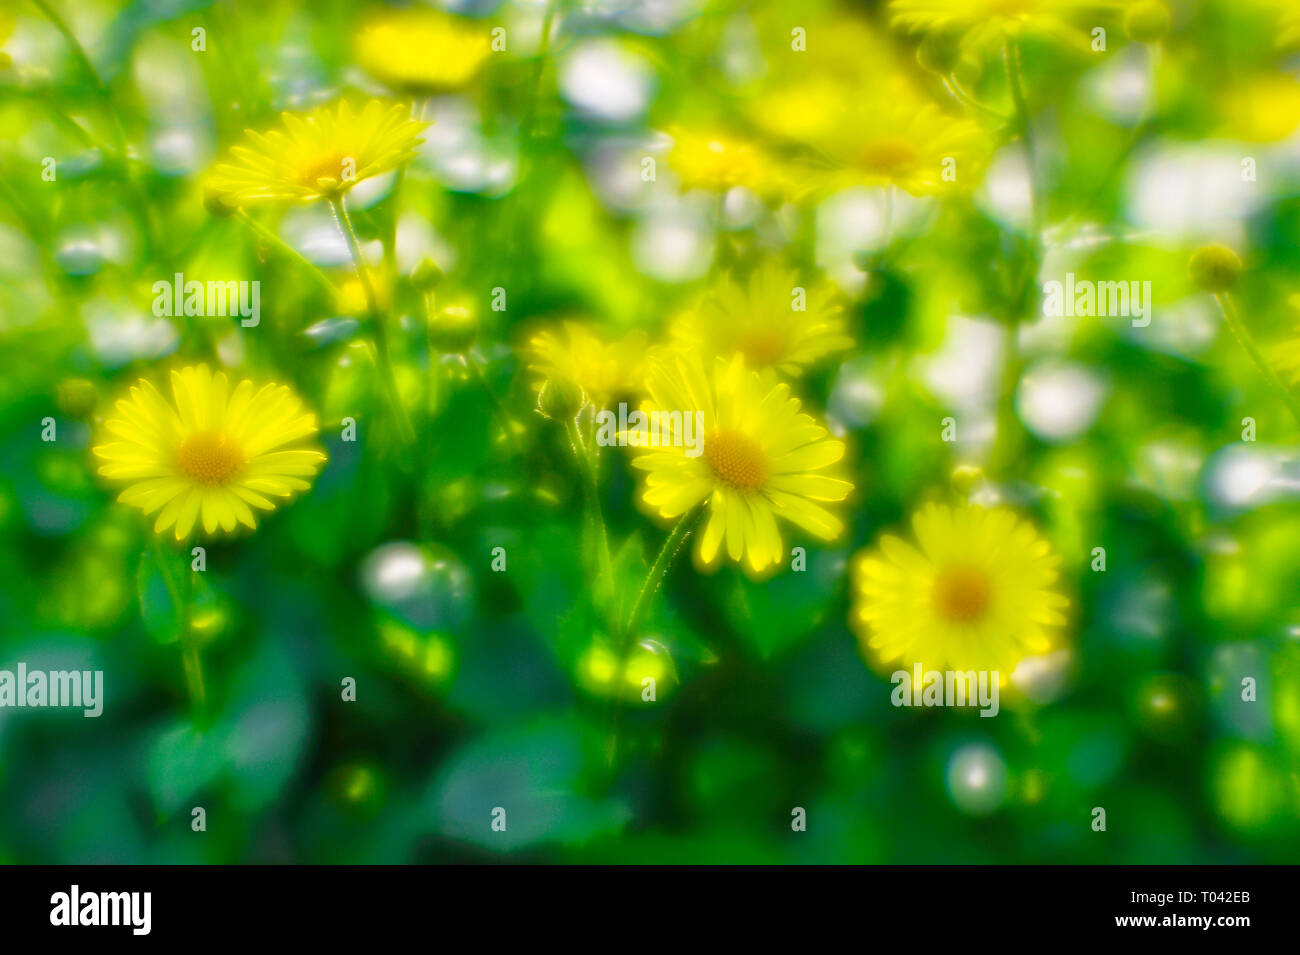 Bush yellow daisies doronikum on the garden bed. The photo was taken on a soft lens. Blurring art. - Stock Image